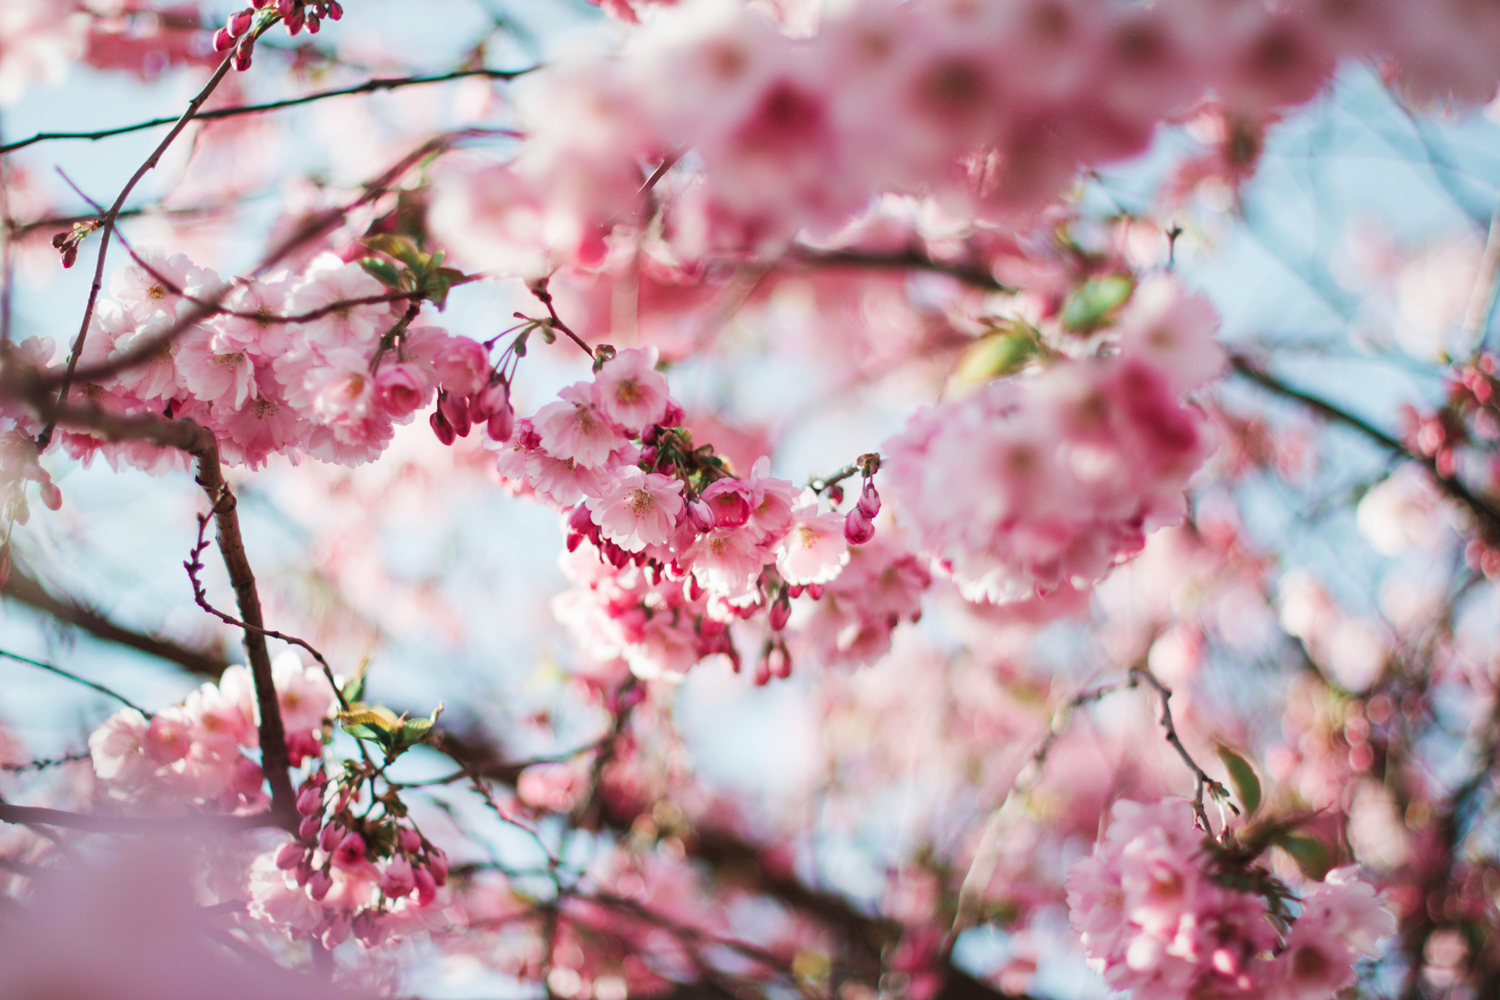 The Significance Of The Cherry Blossom Tree In Japanese Culture Goes